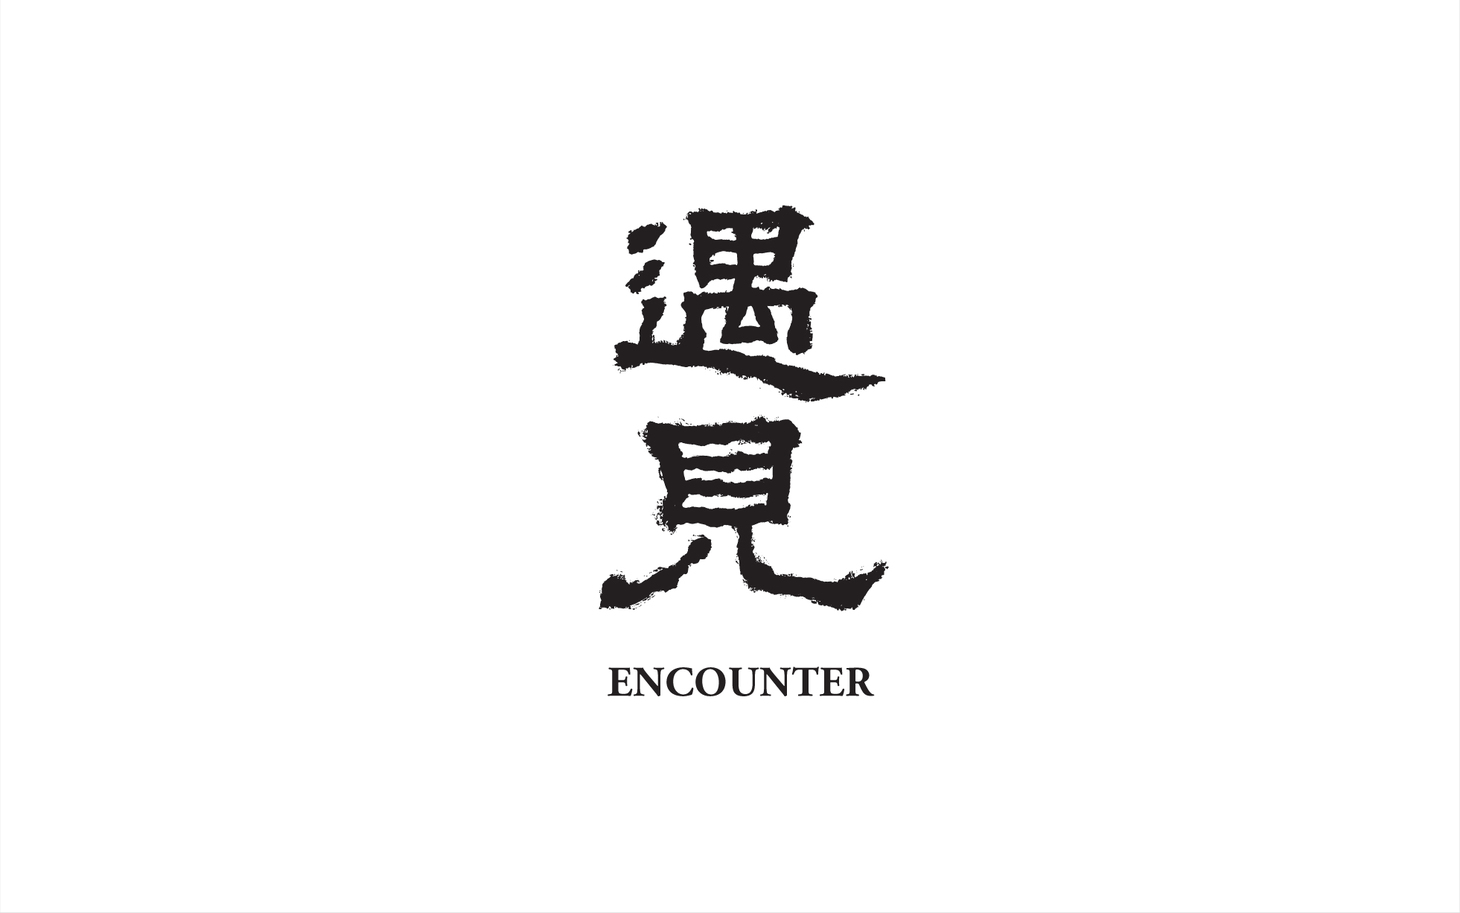 encounter_logo.jpg